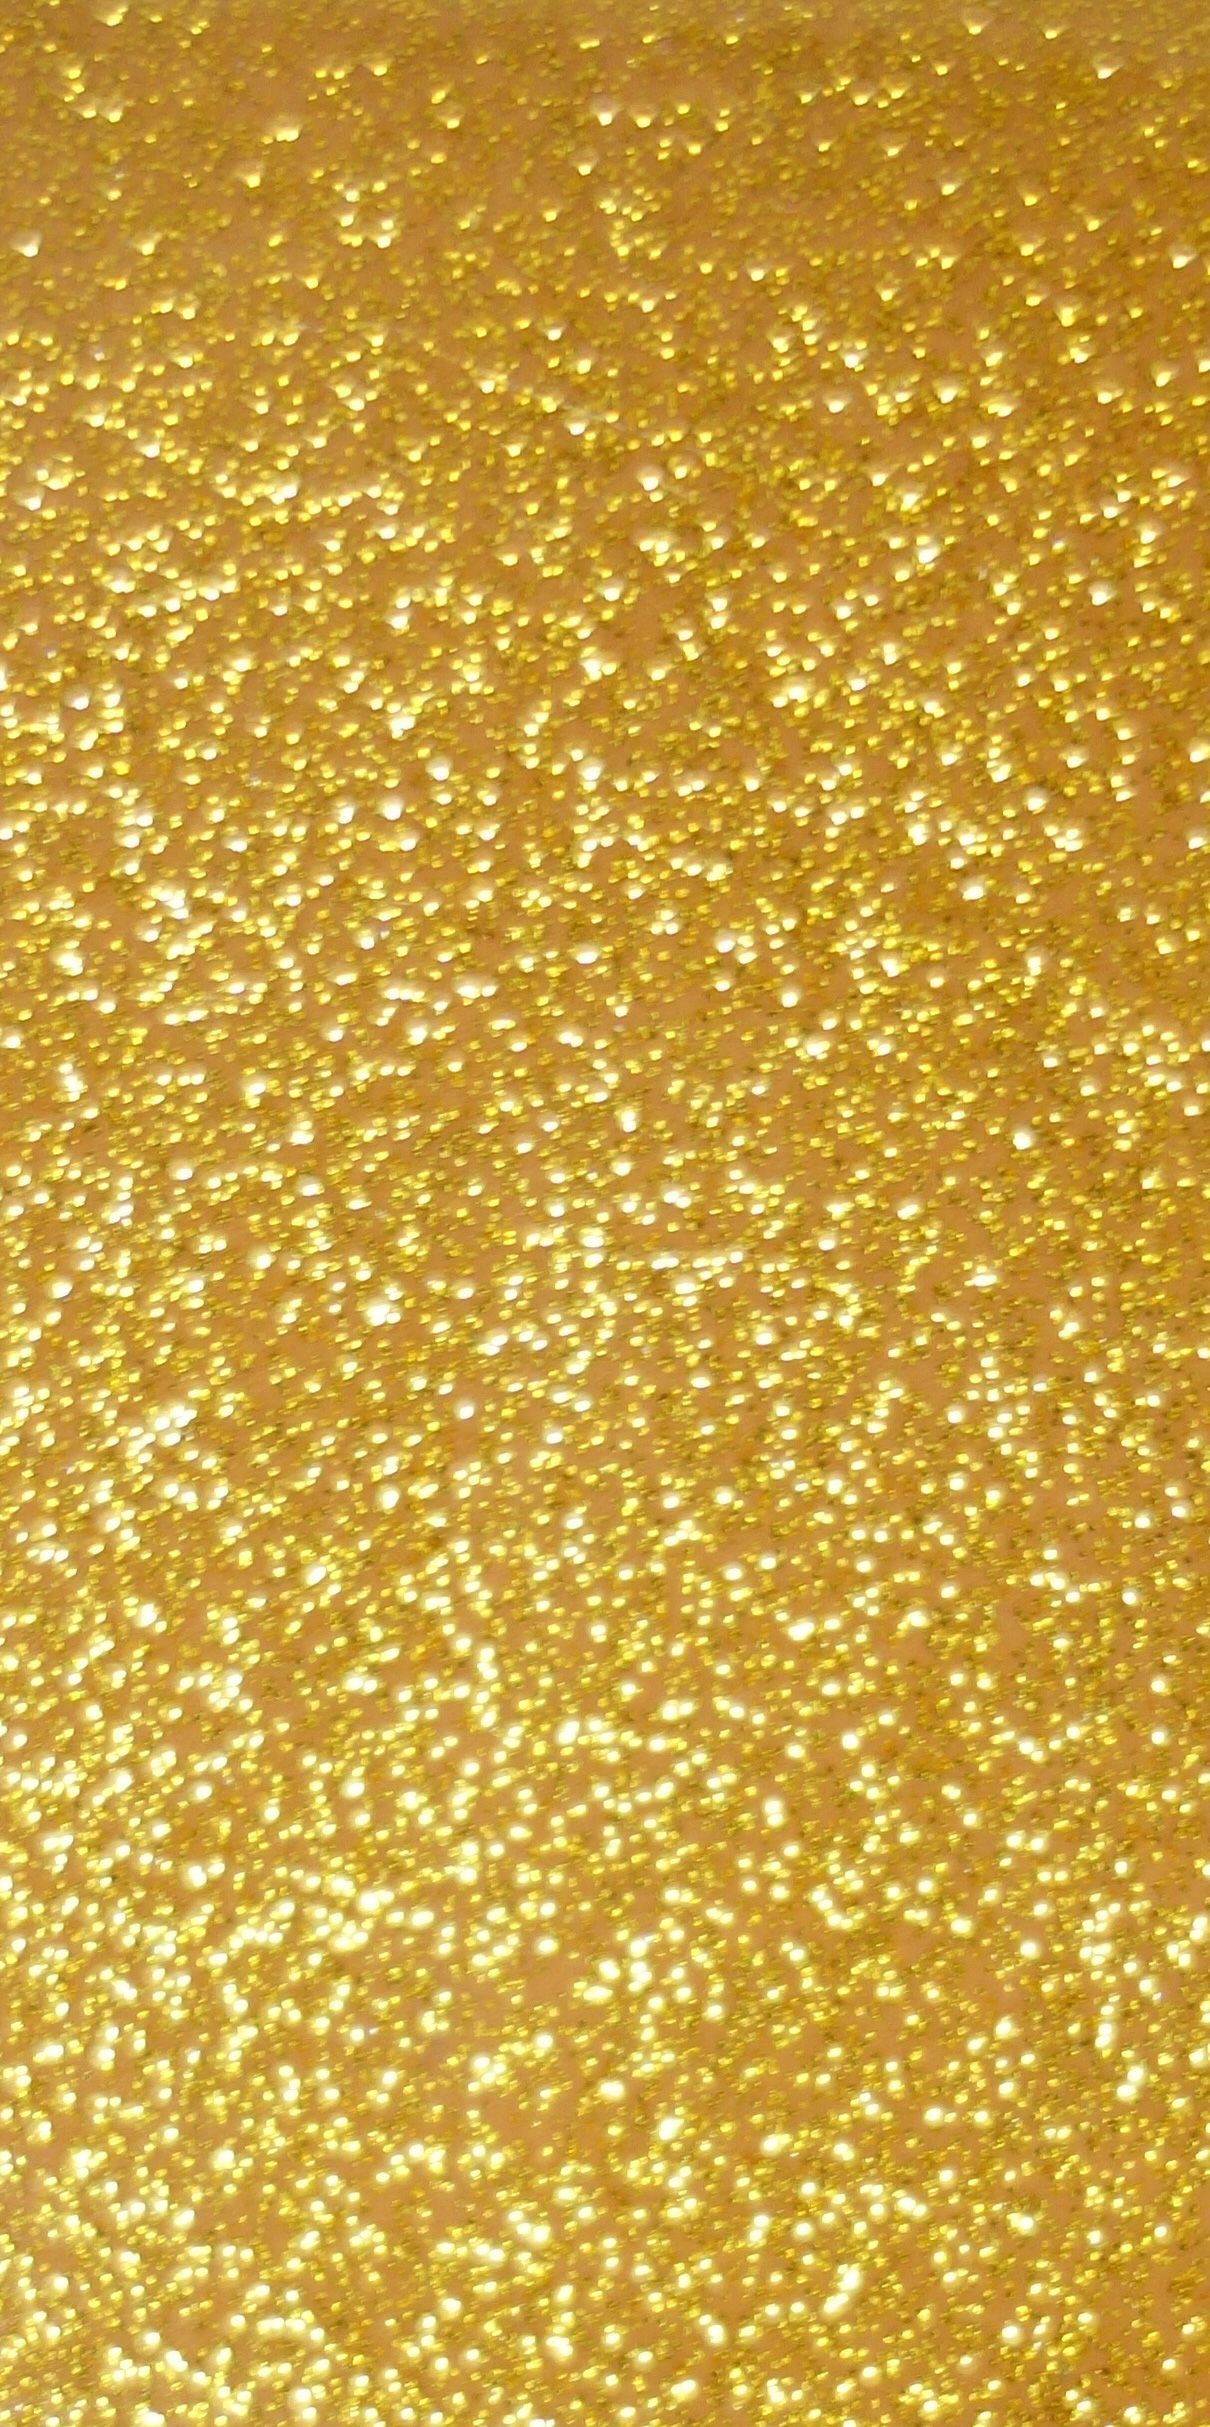 Sparkle Gold Vinyl Gold Gold Texture Gold Aesthetic